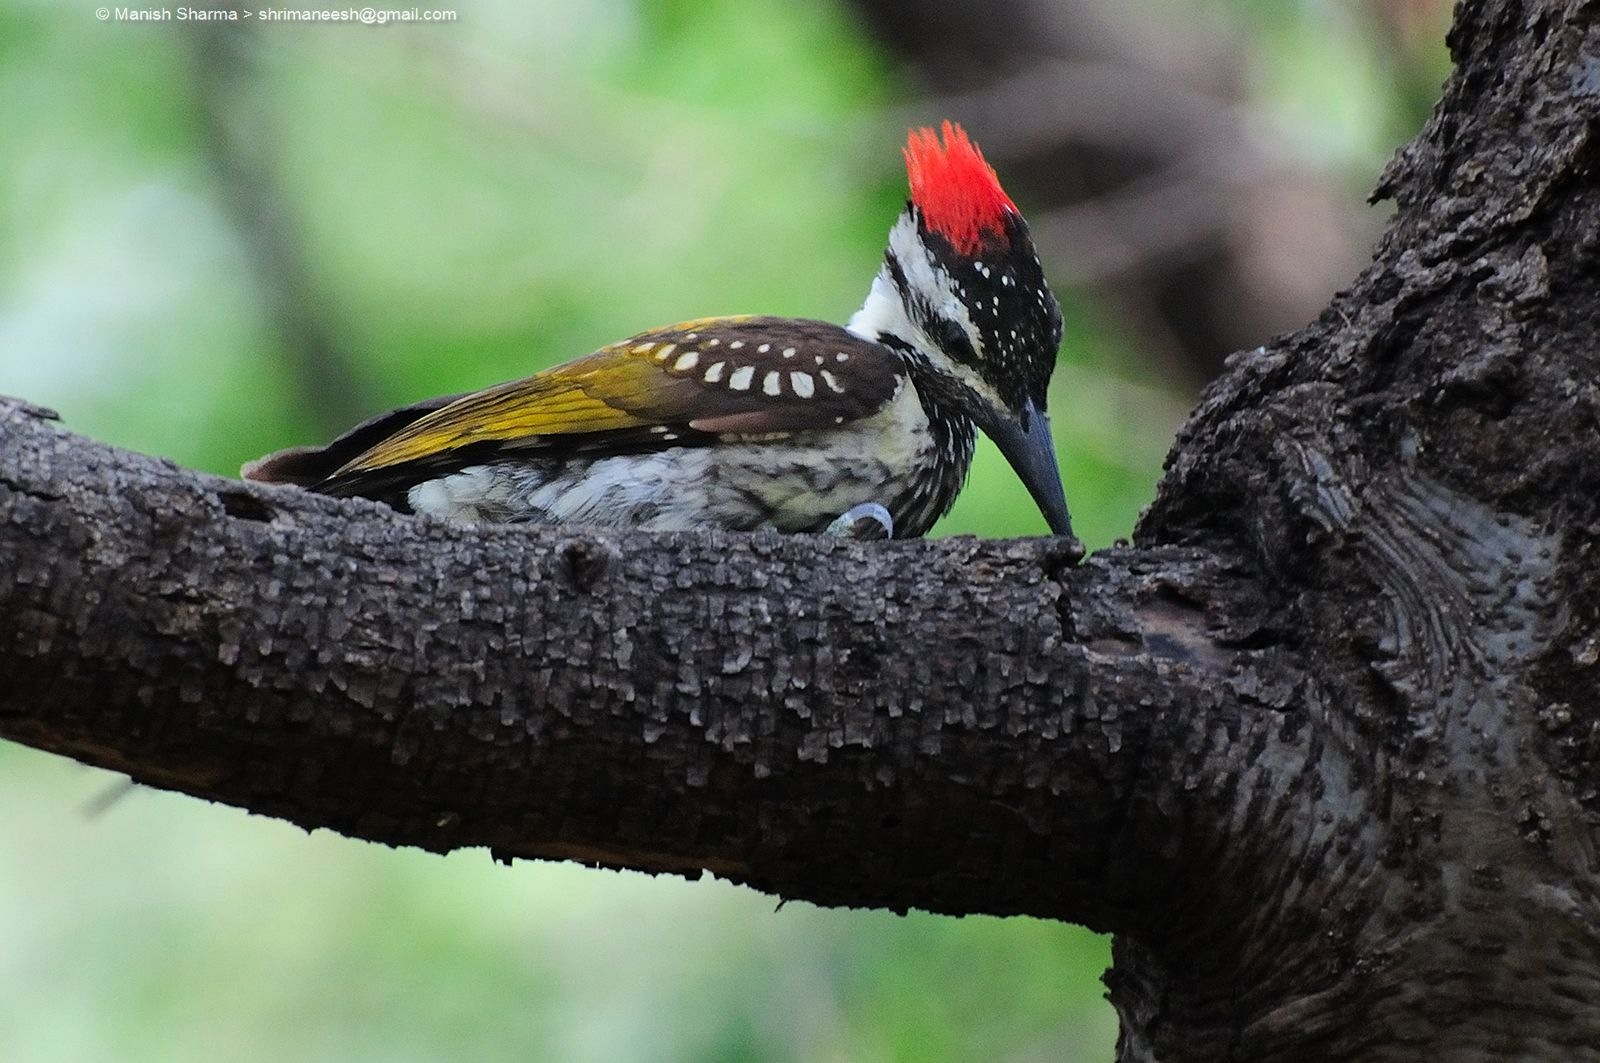 Black-rumped flameback, or Lesser golden-backed woodpecker,...Scientific name: Dinopium benghalense by Maneesh Sharma